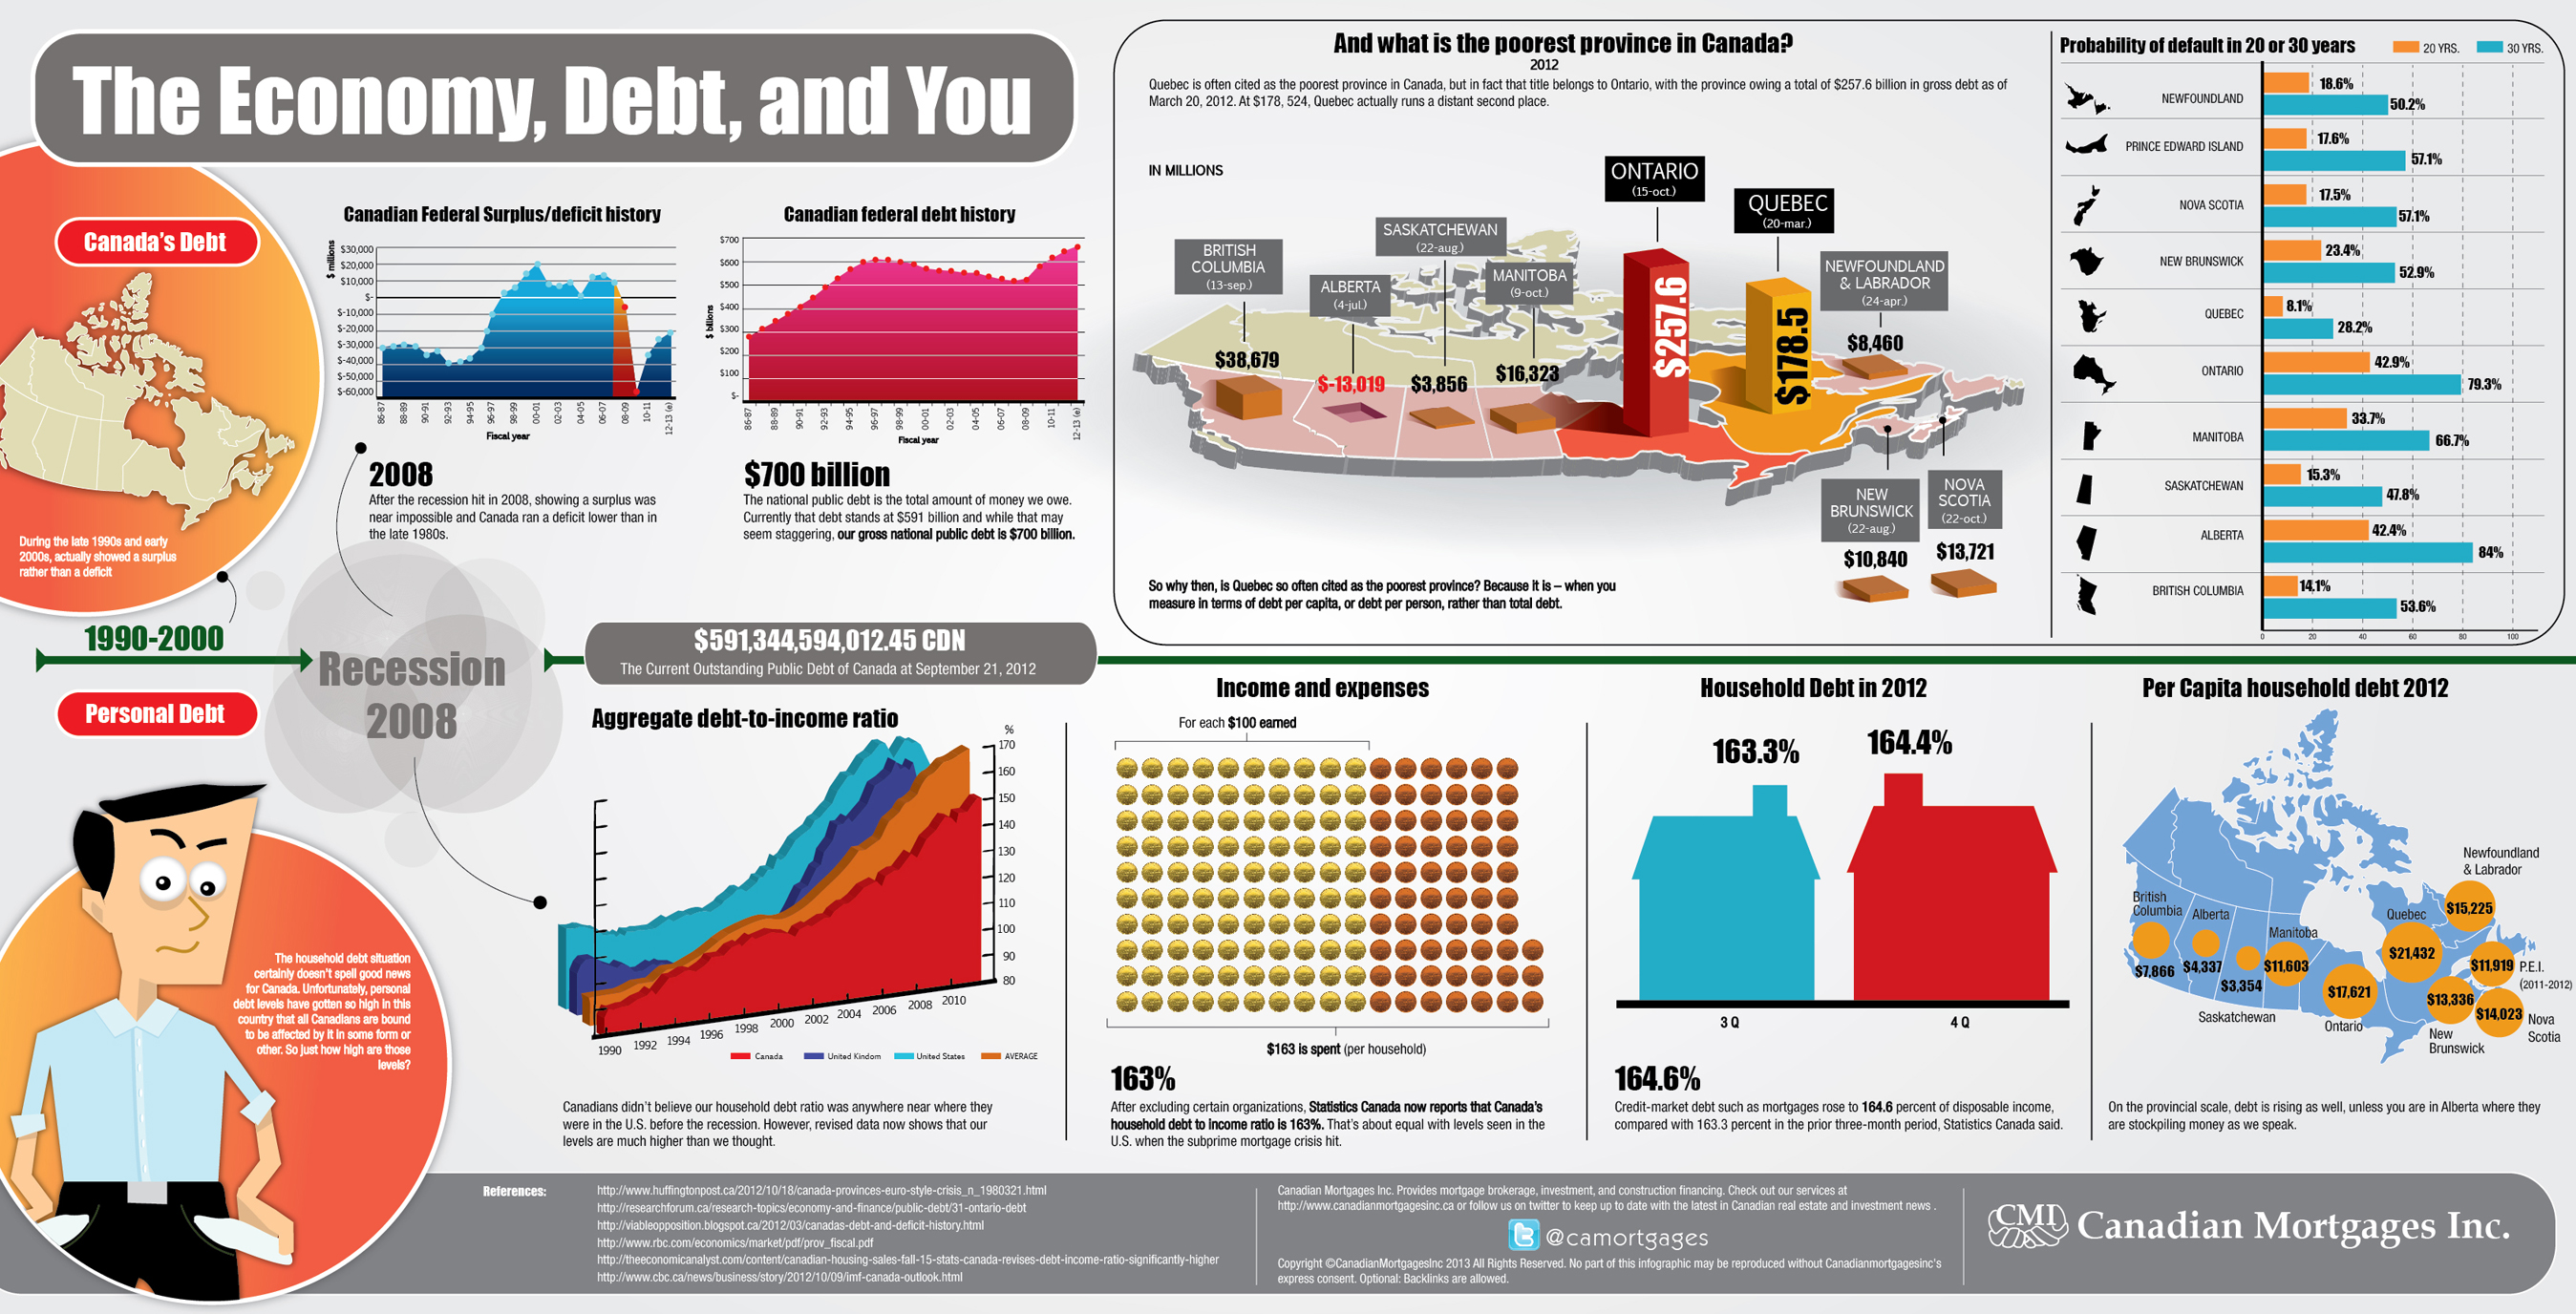 Canadian Debt Infographic: The Economy, Debt, and You